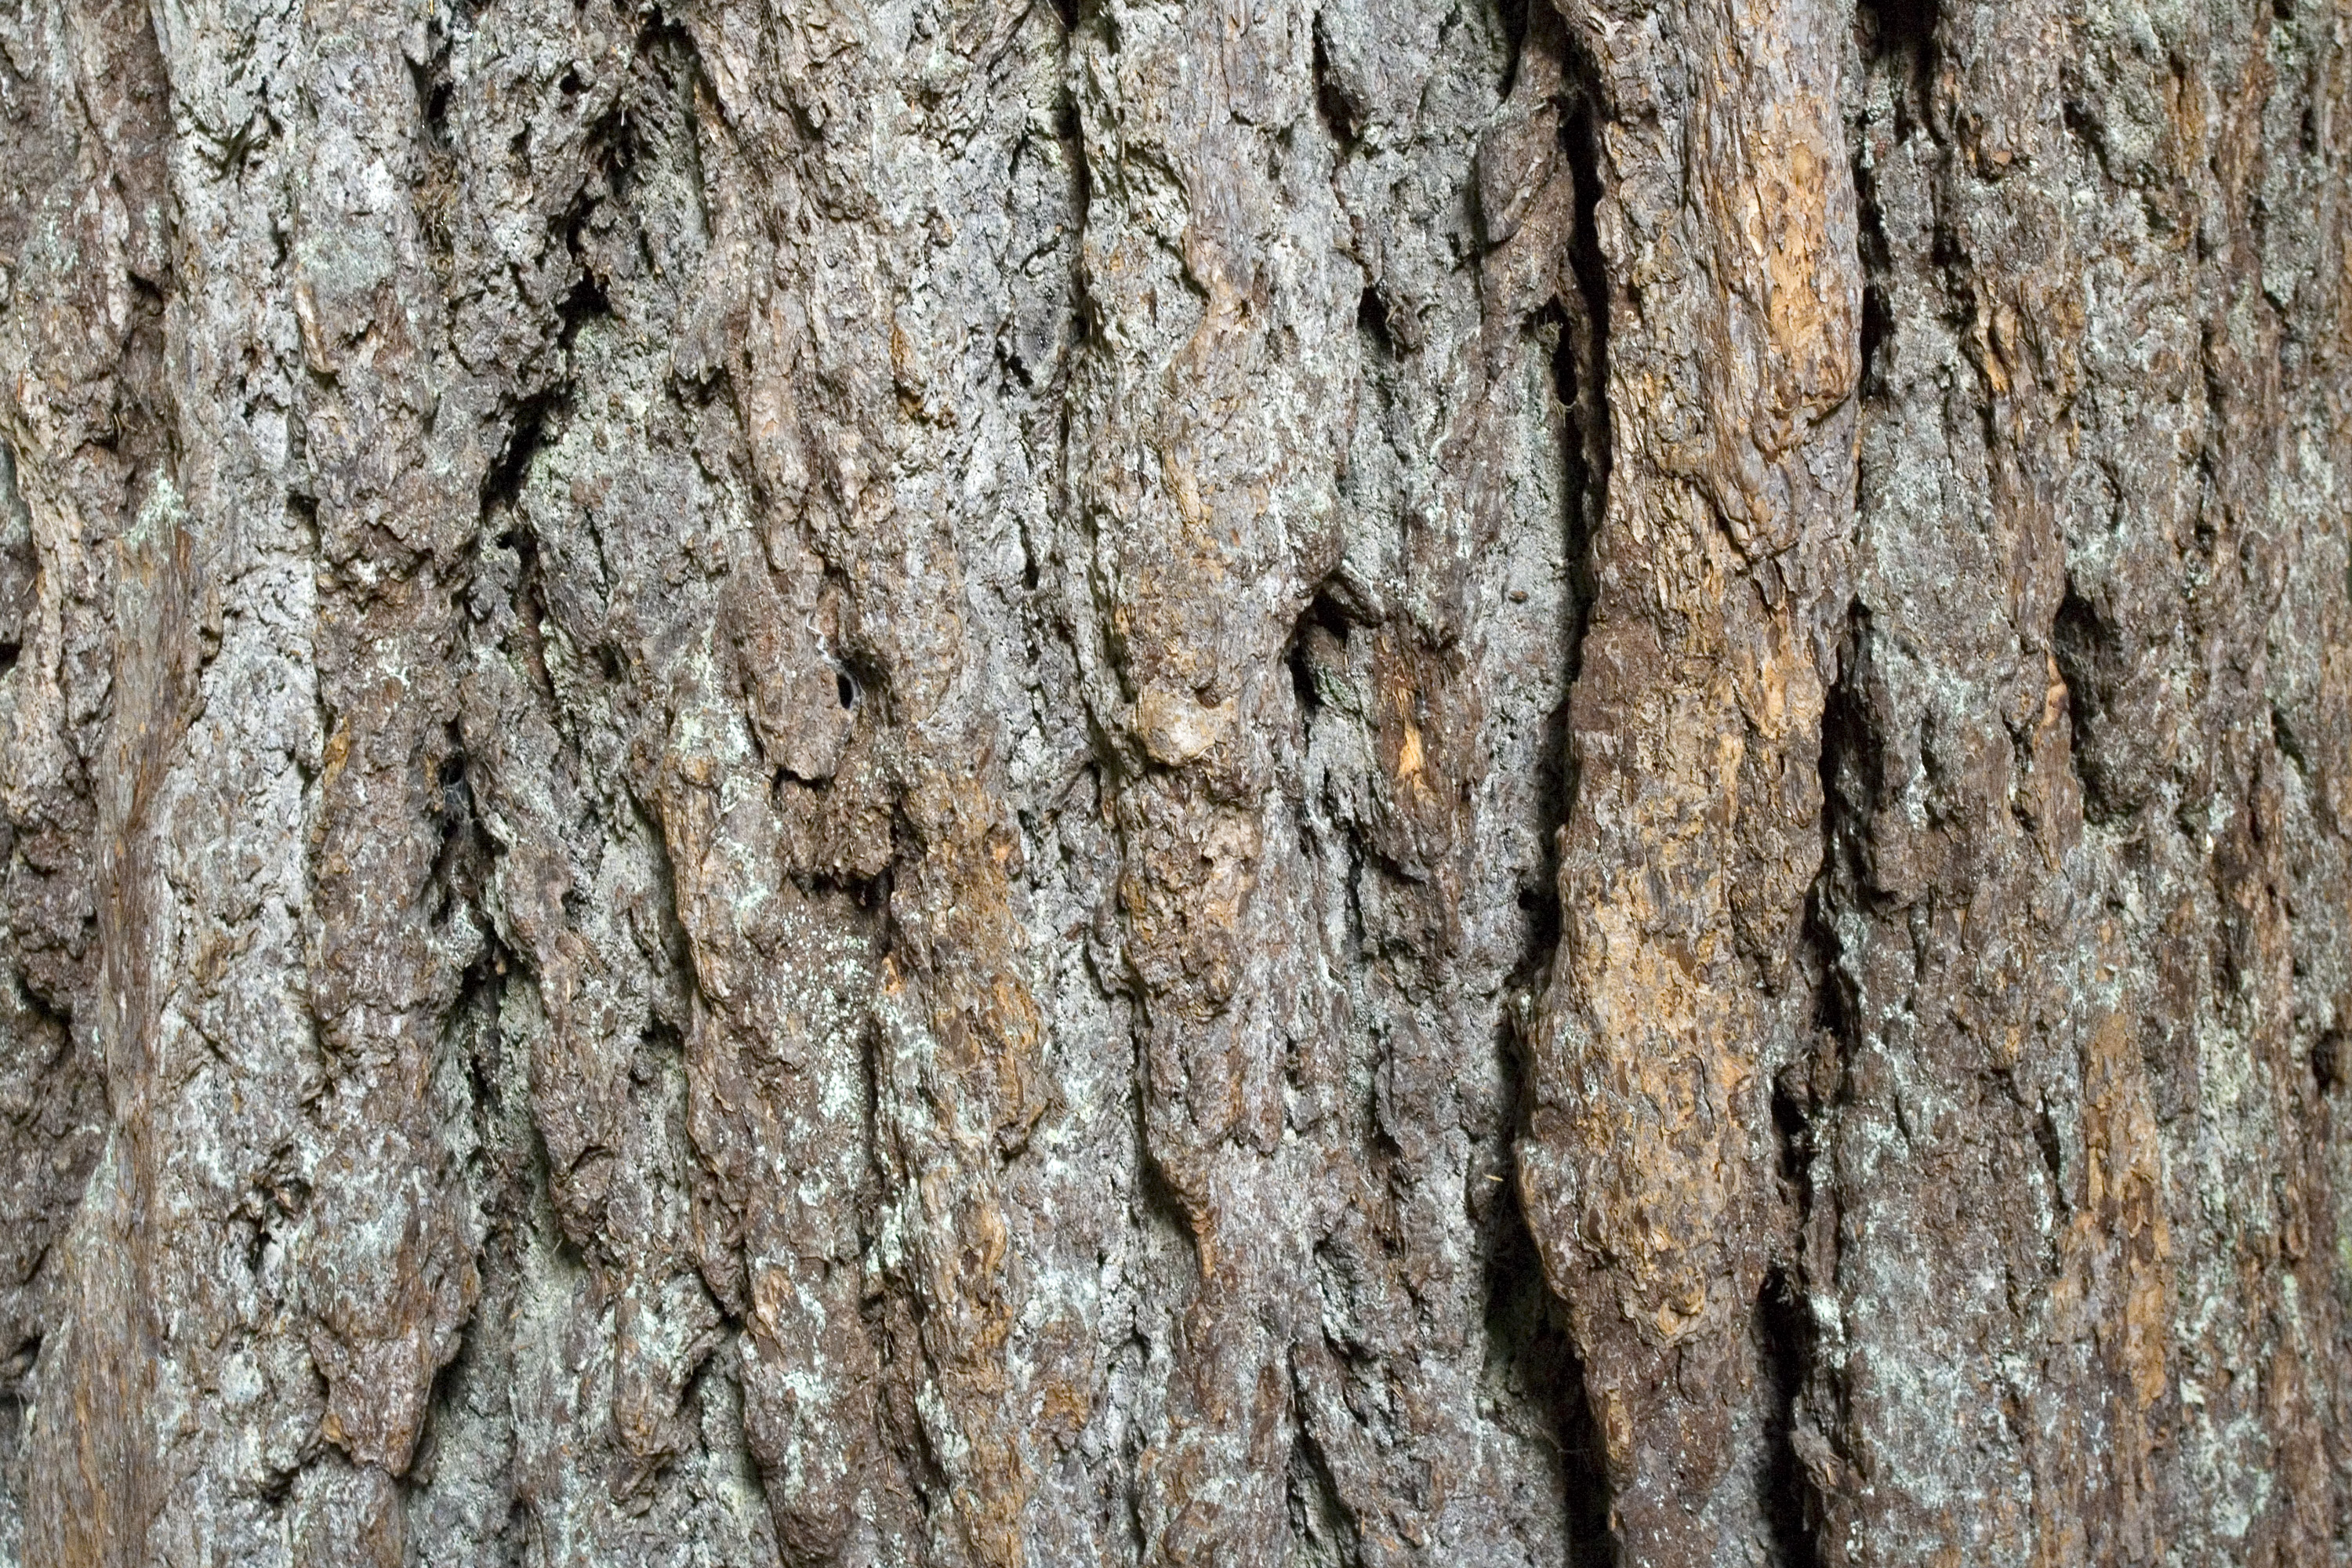 Furrowed bark of an old growth Douglas-fir tree